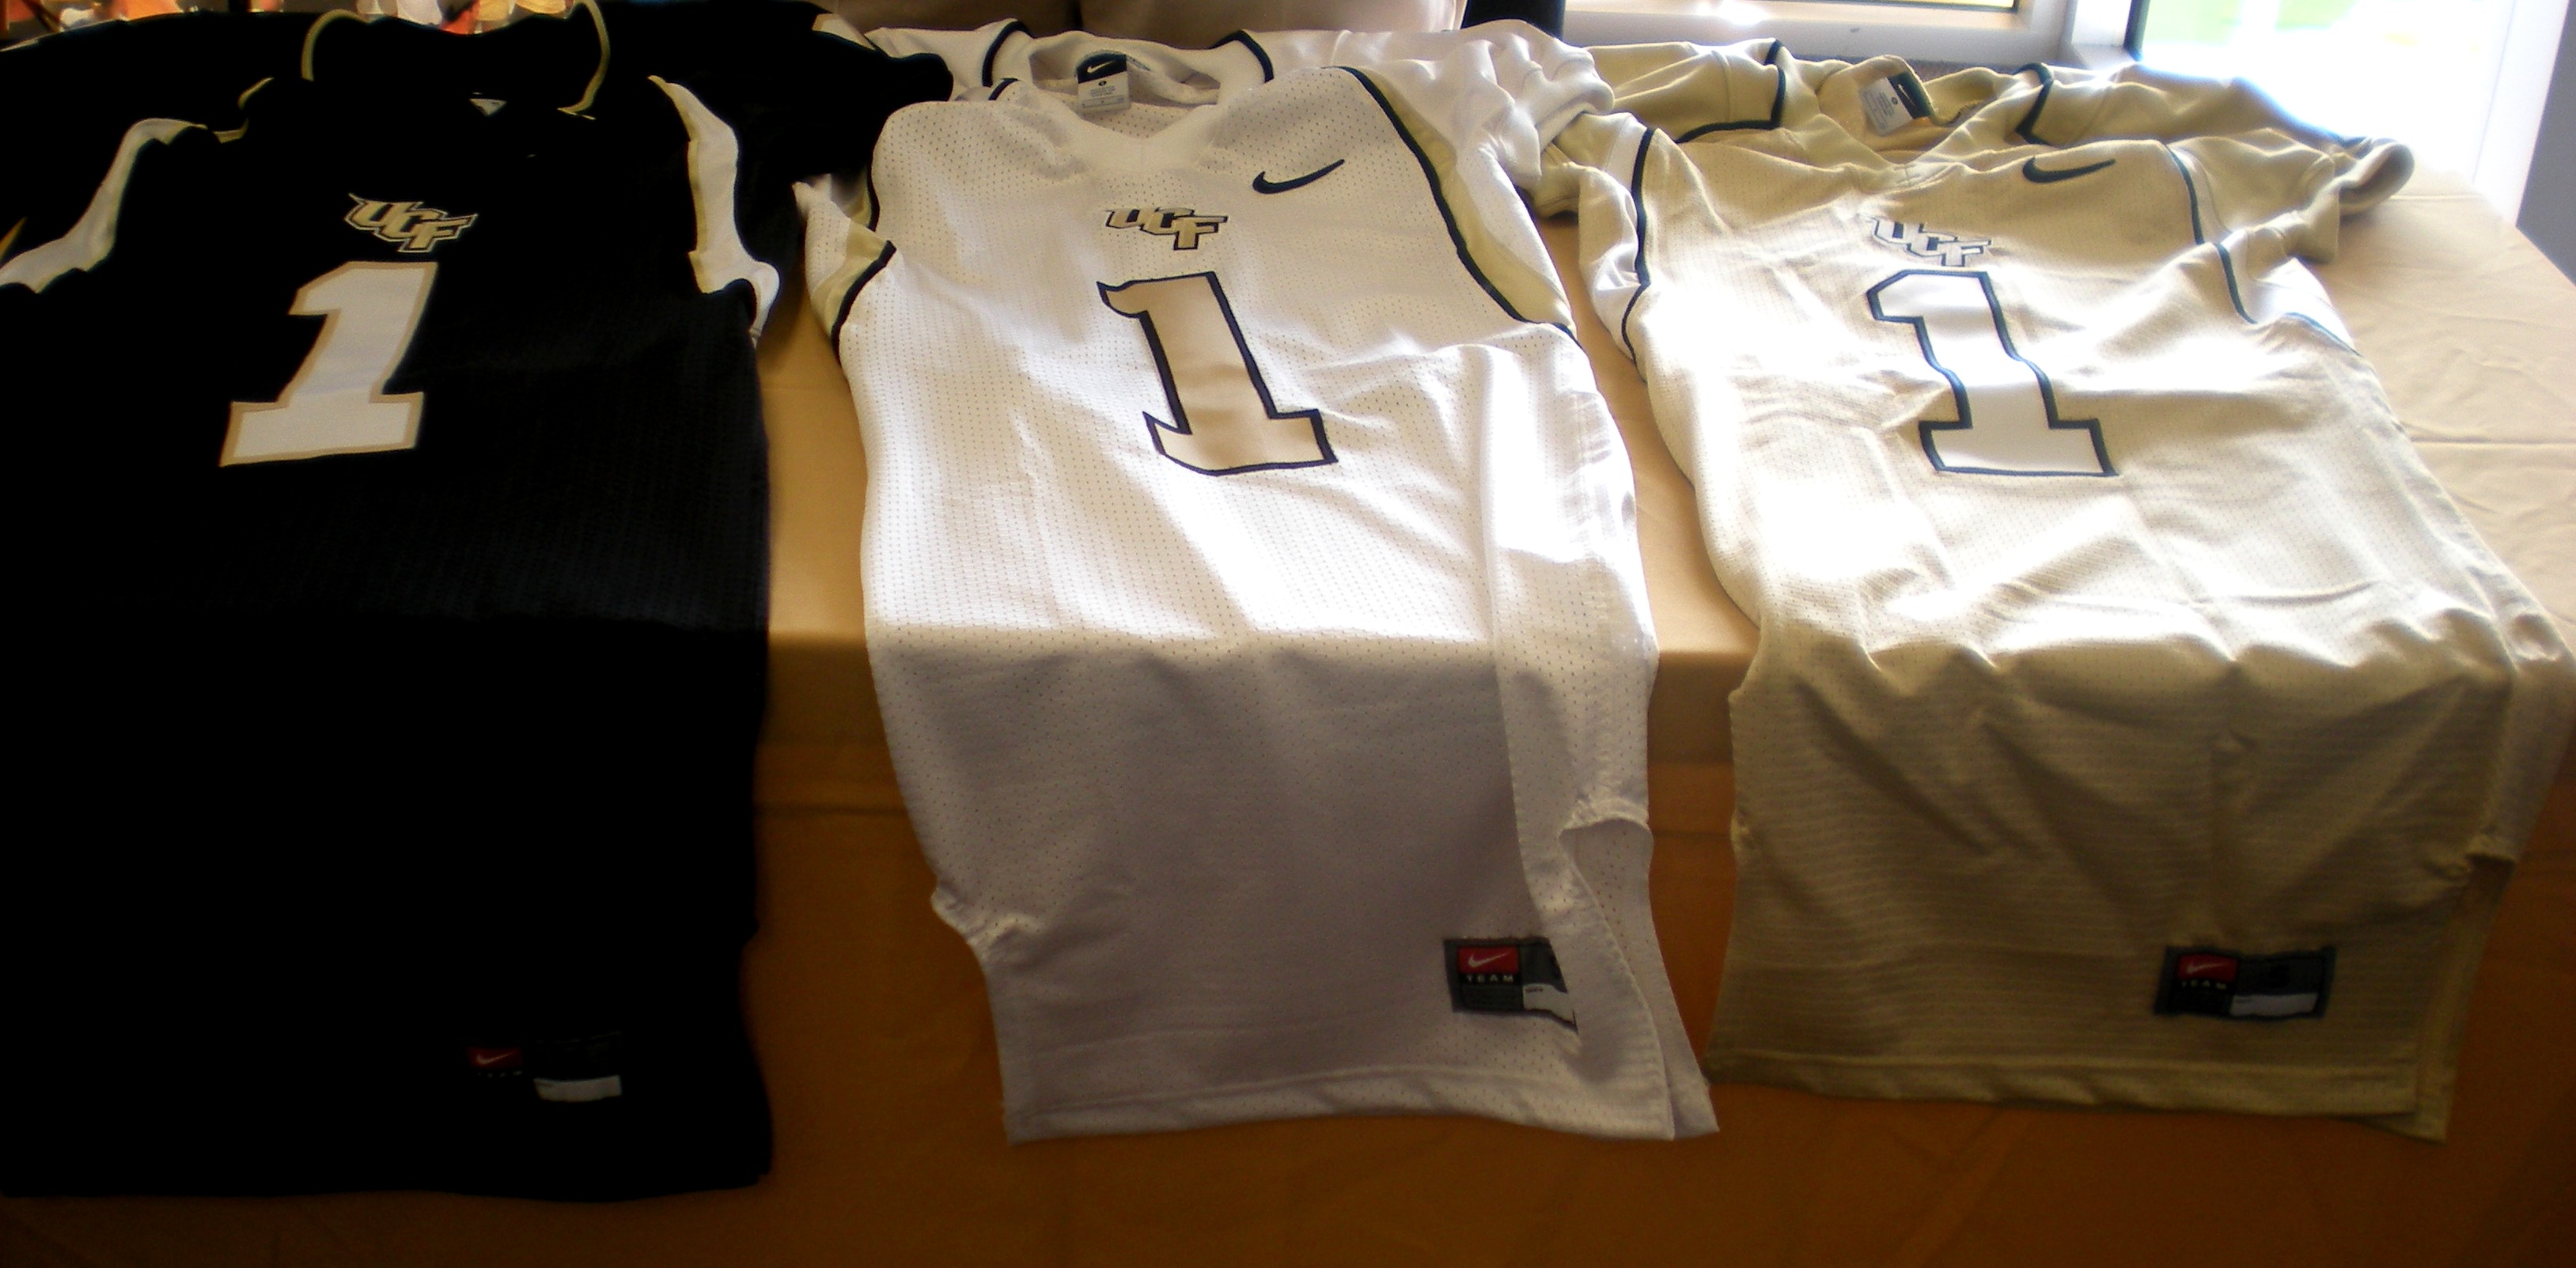 online retailer 96c8e ebc00 Photos of UCF's New Nike Jerseys | KnightNews.com